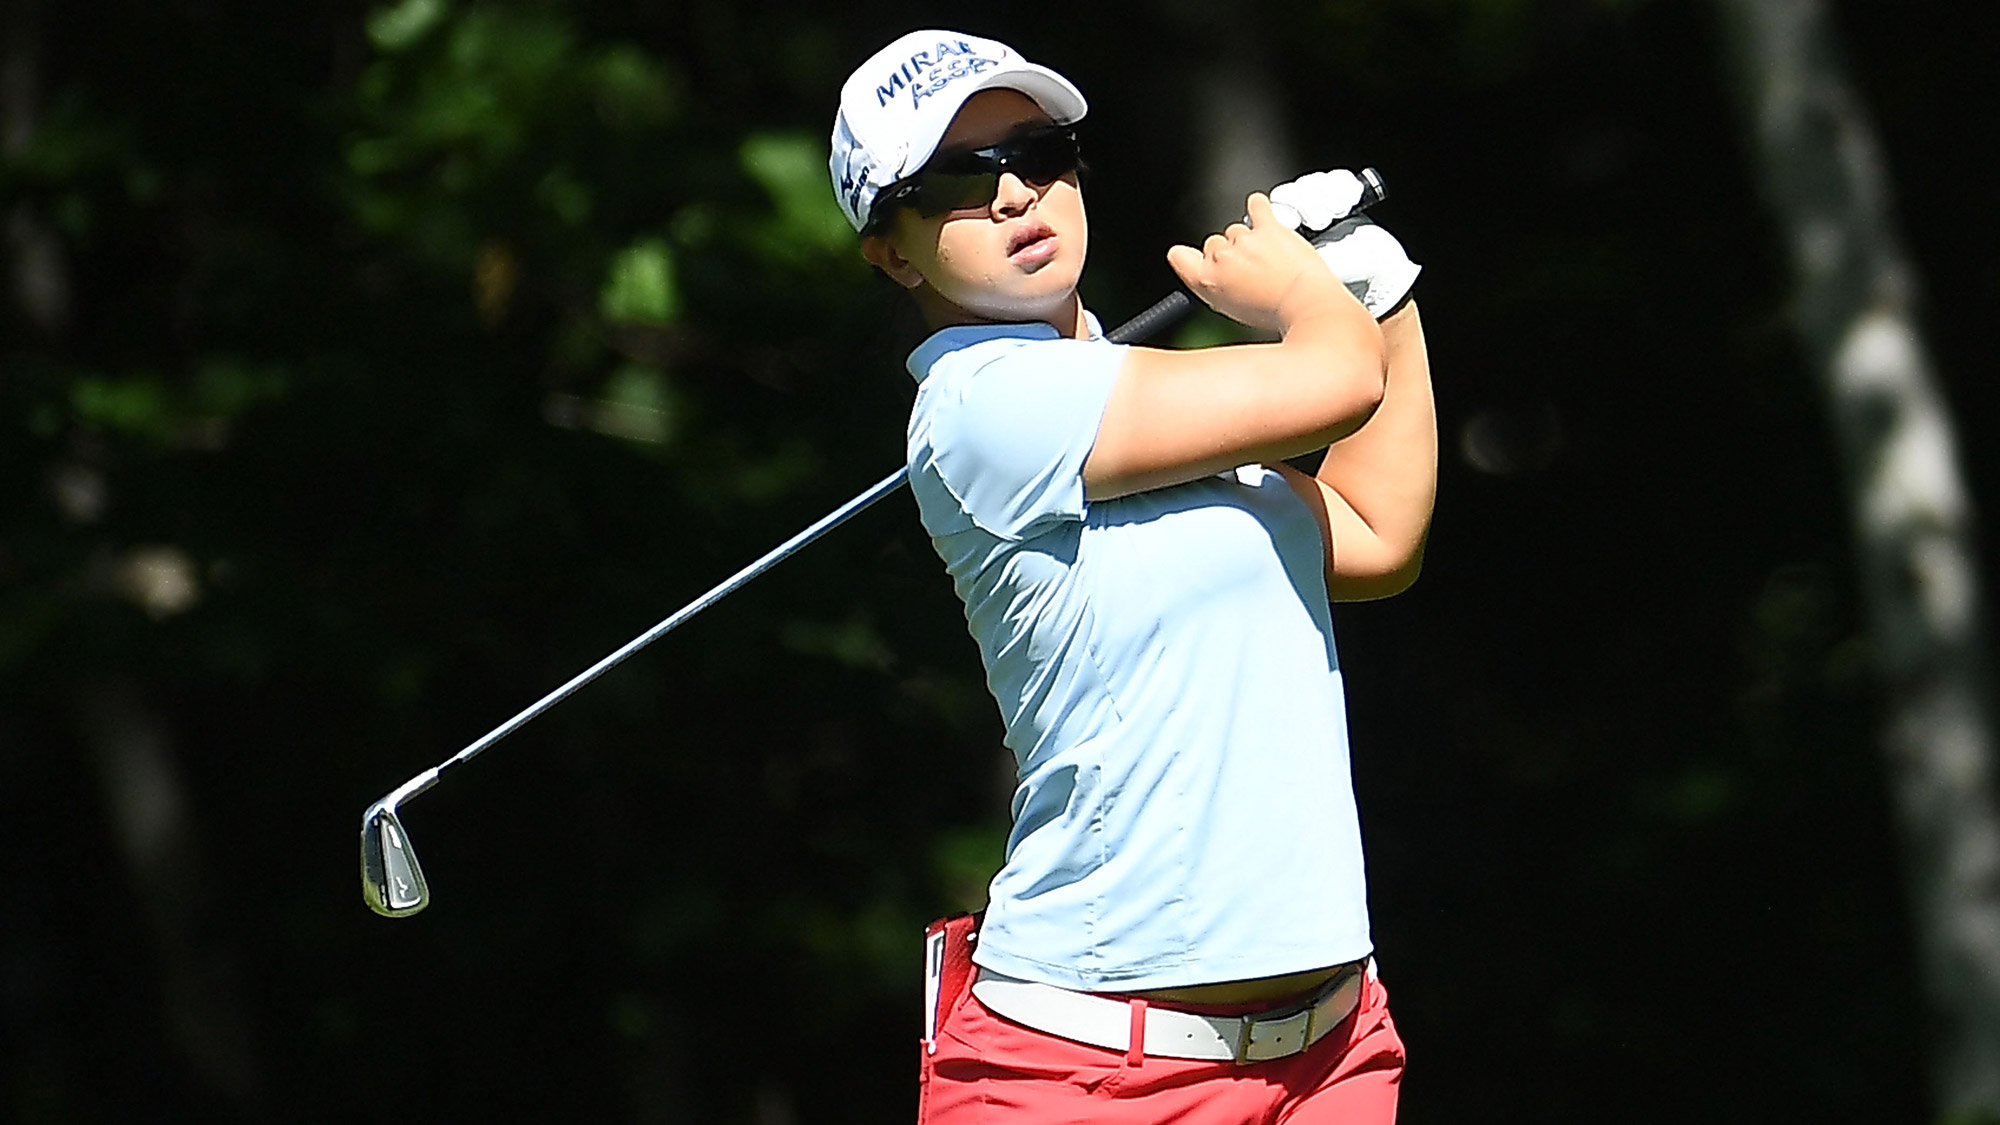 Sei Young Kim Swings on Sunday at the Thornberry Creek LPGA Classic